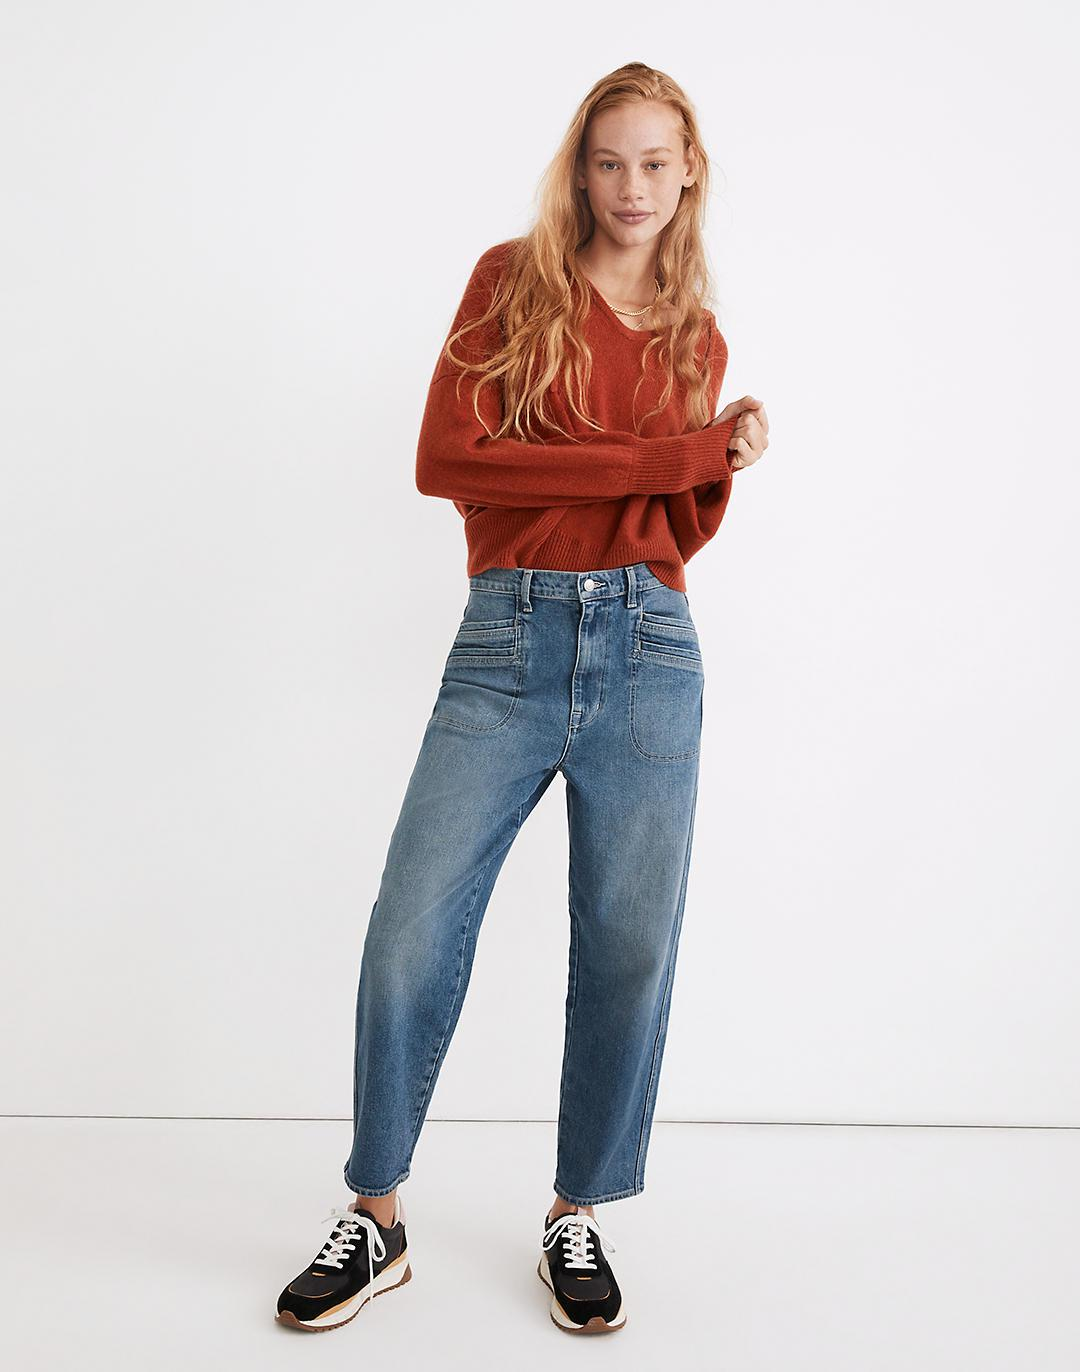 Rivet & Thread High-Rise Relaxed Straight Jeans in Paladino Wash